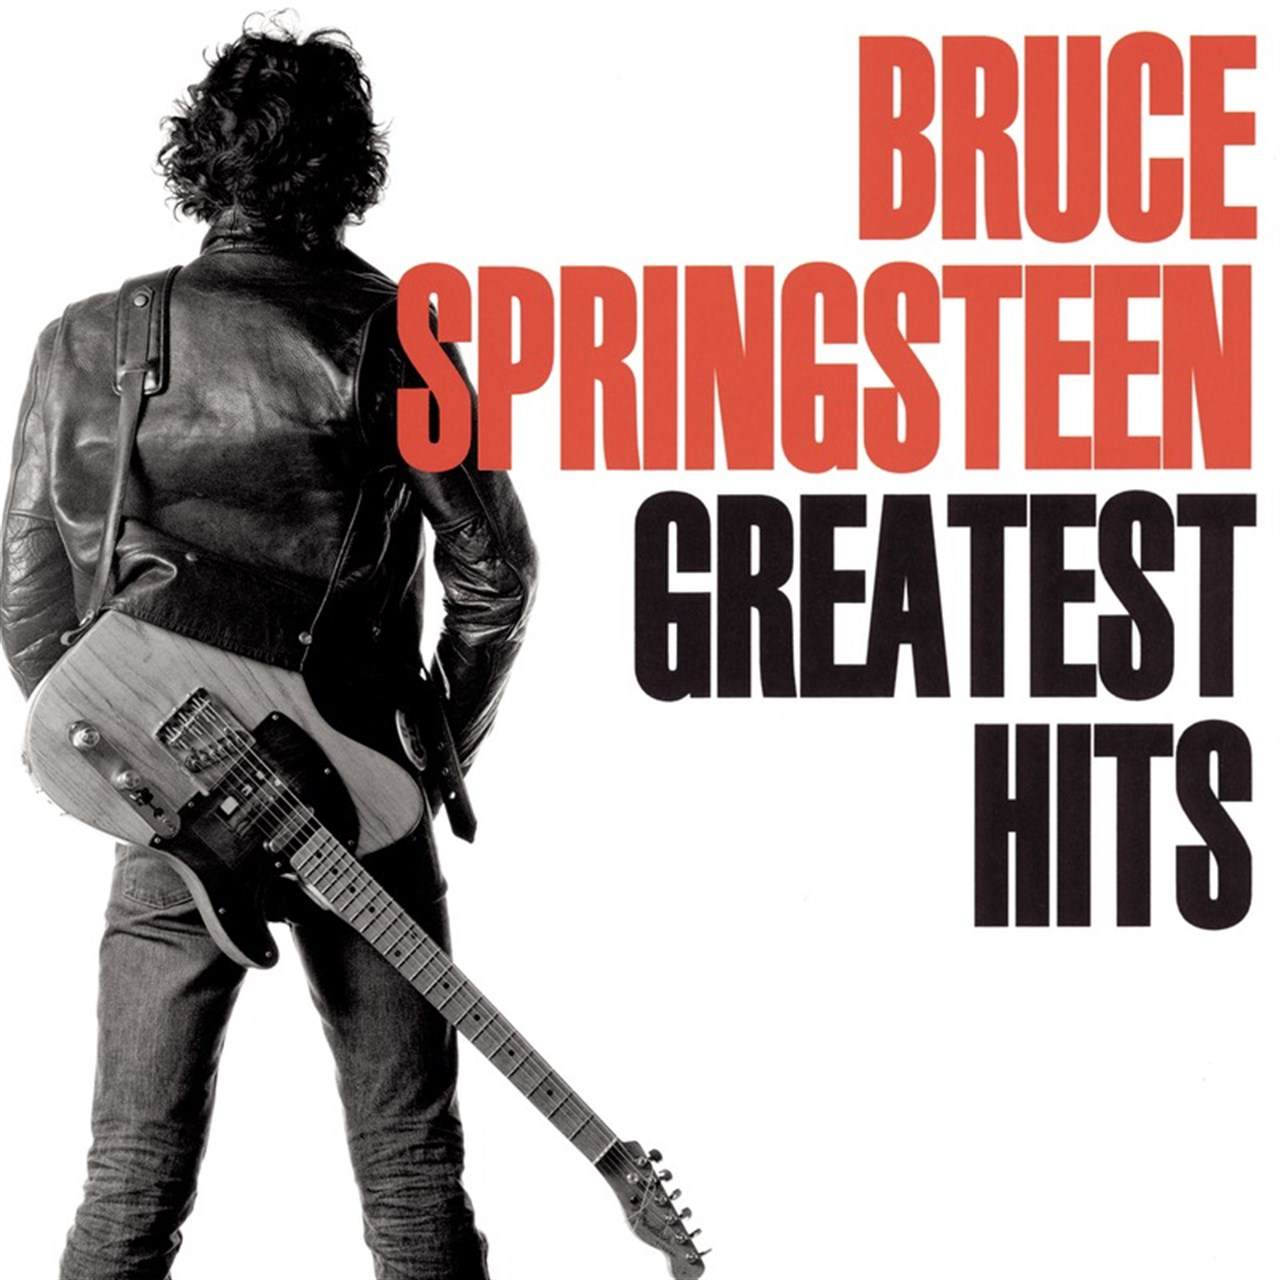 цена Bruce Springsteen Bruce Springsteen - Greatest Hits (2 LP) онлайн в 2017 году